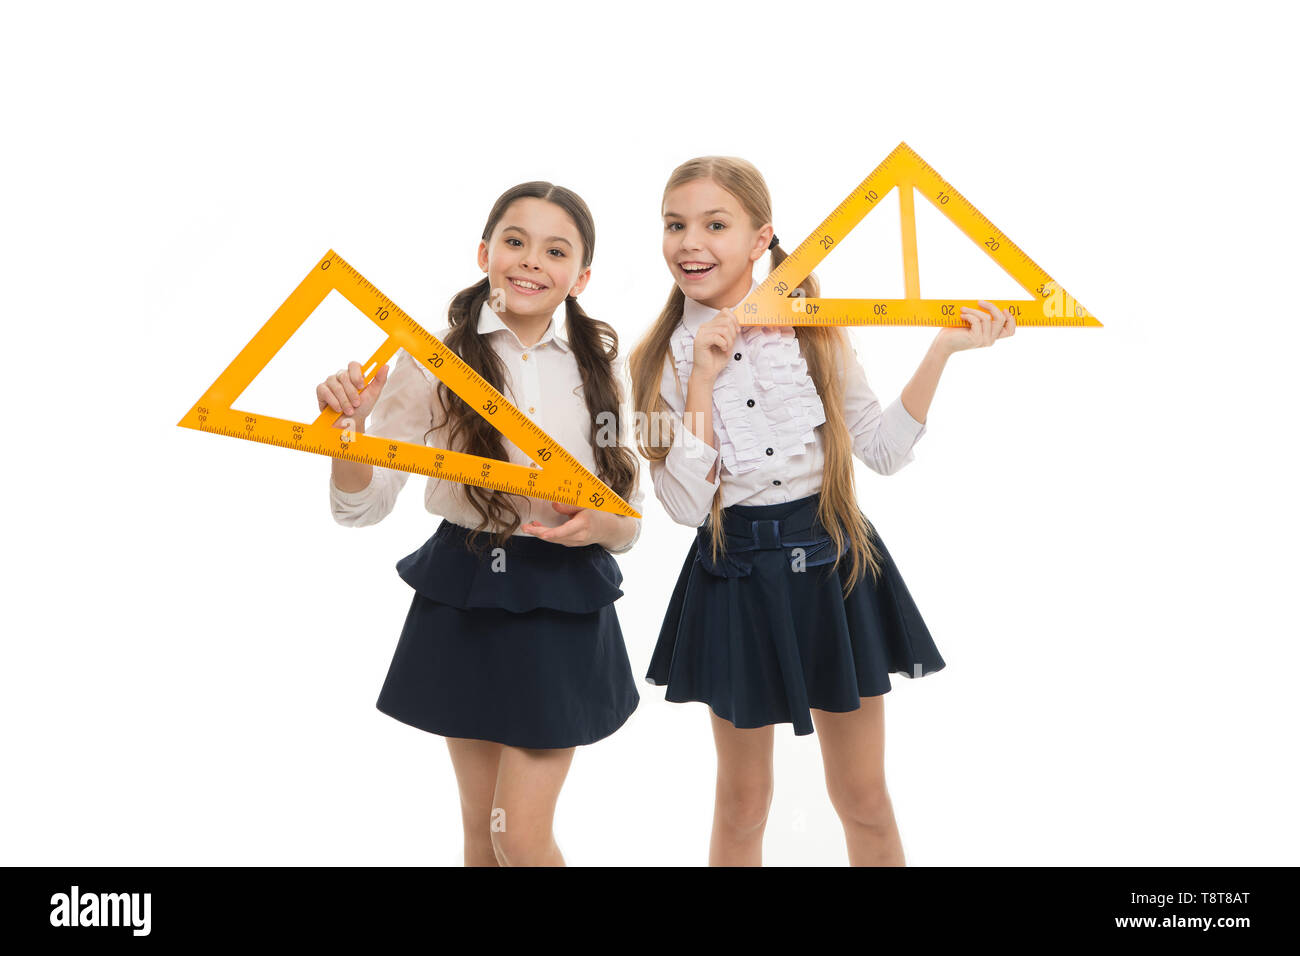 Favorite school subject. Education and school concept. School students learning geometry. Kids school uniform isolated white. STEM concept. Learn theorem about right angle. Girls with big rulers. - Stock Image